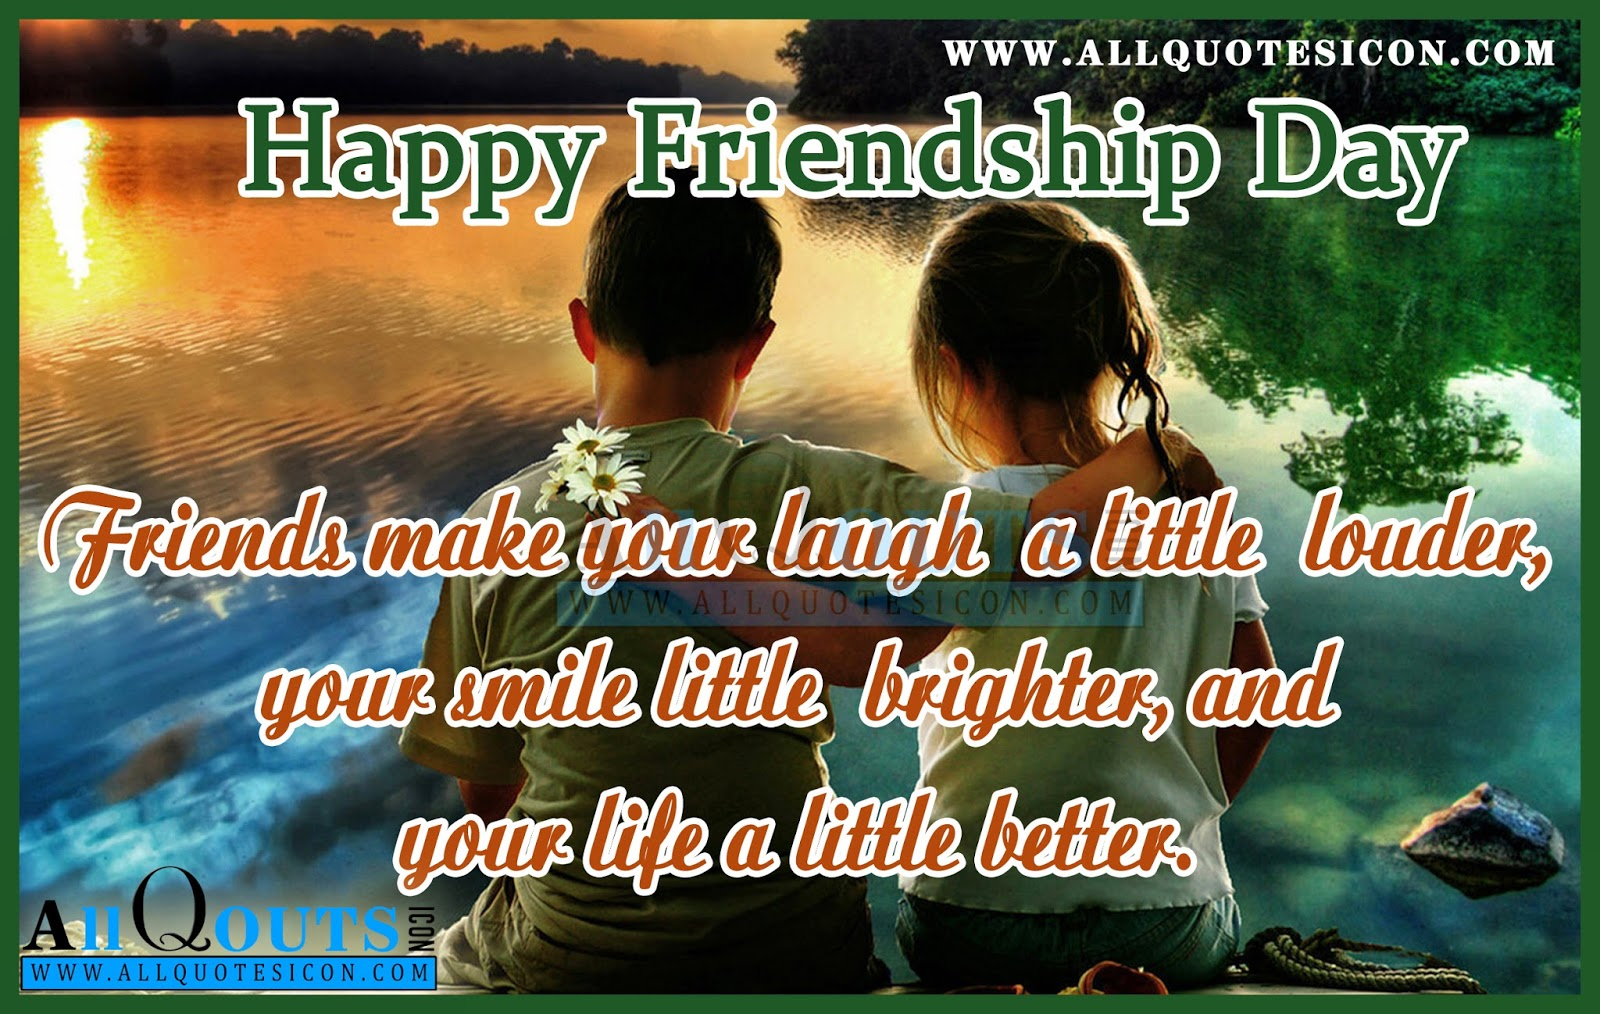 Friendship Day 2016 Best Quotes With Images In English Friendship